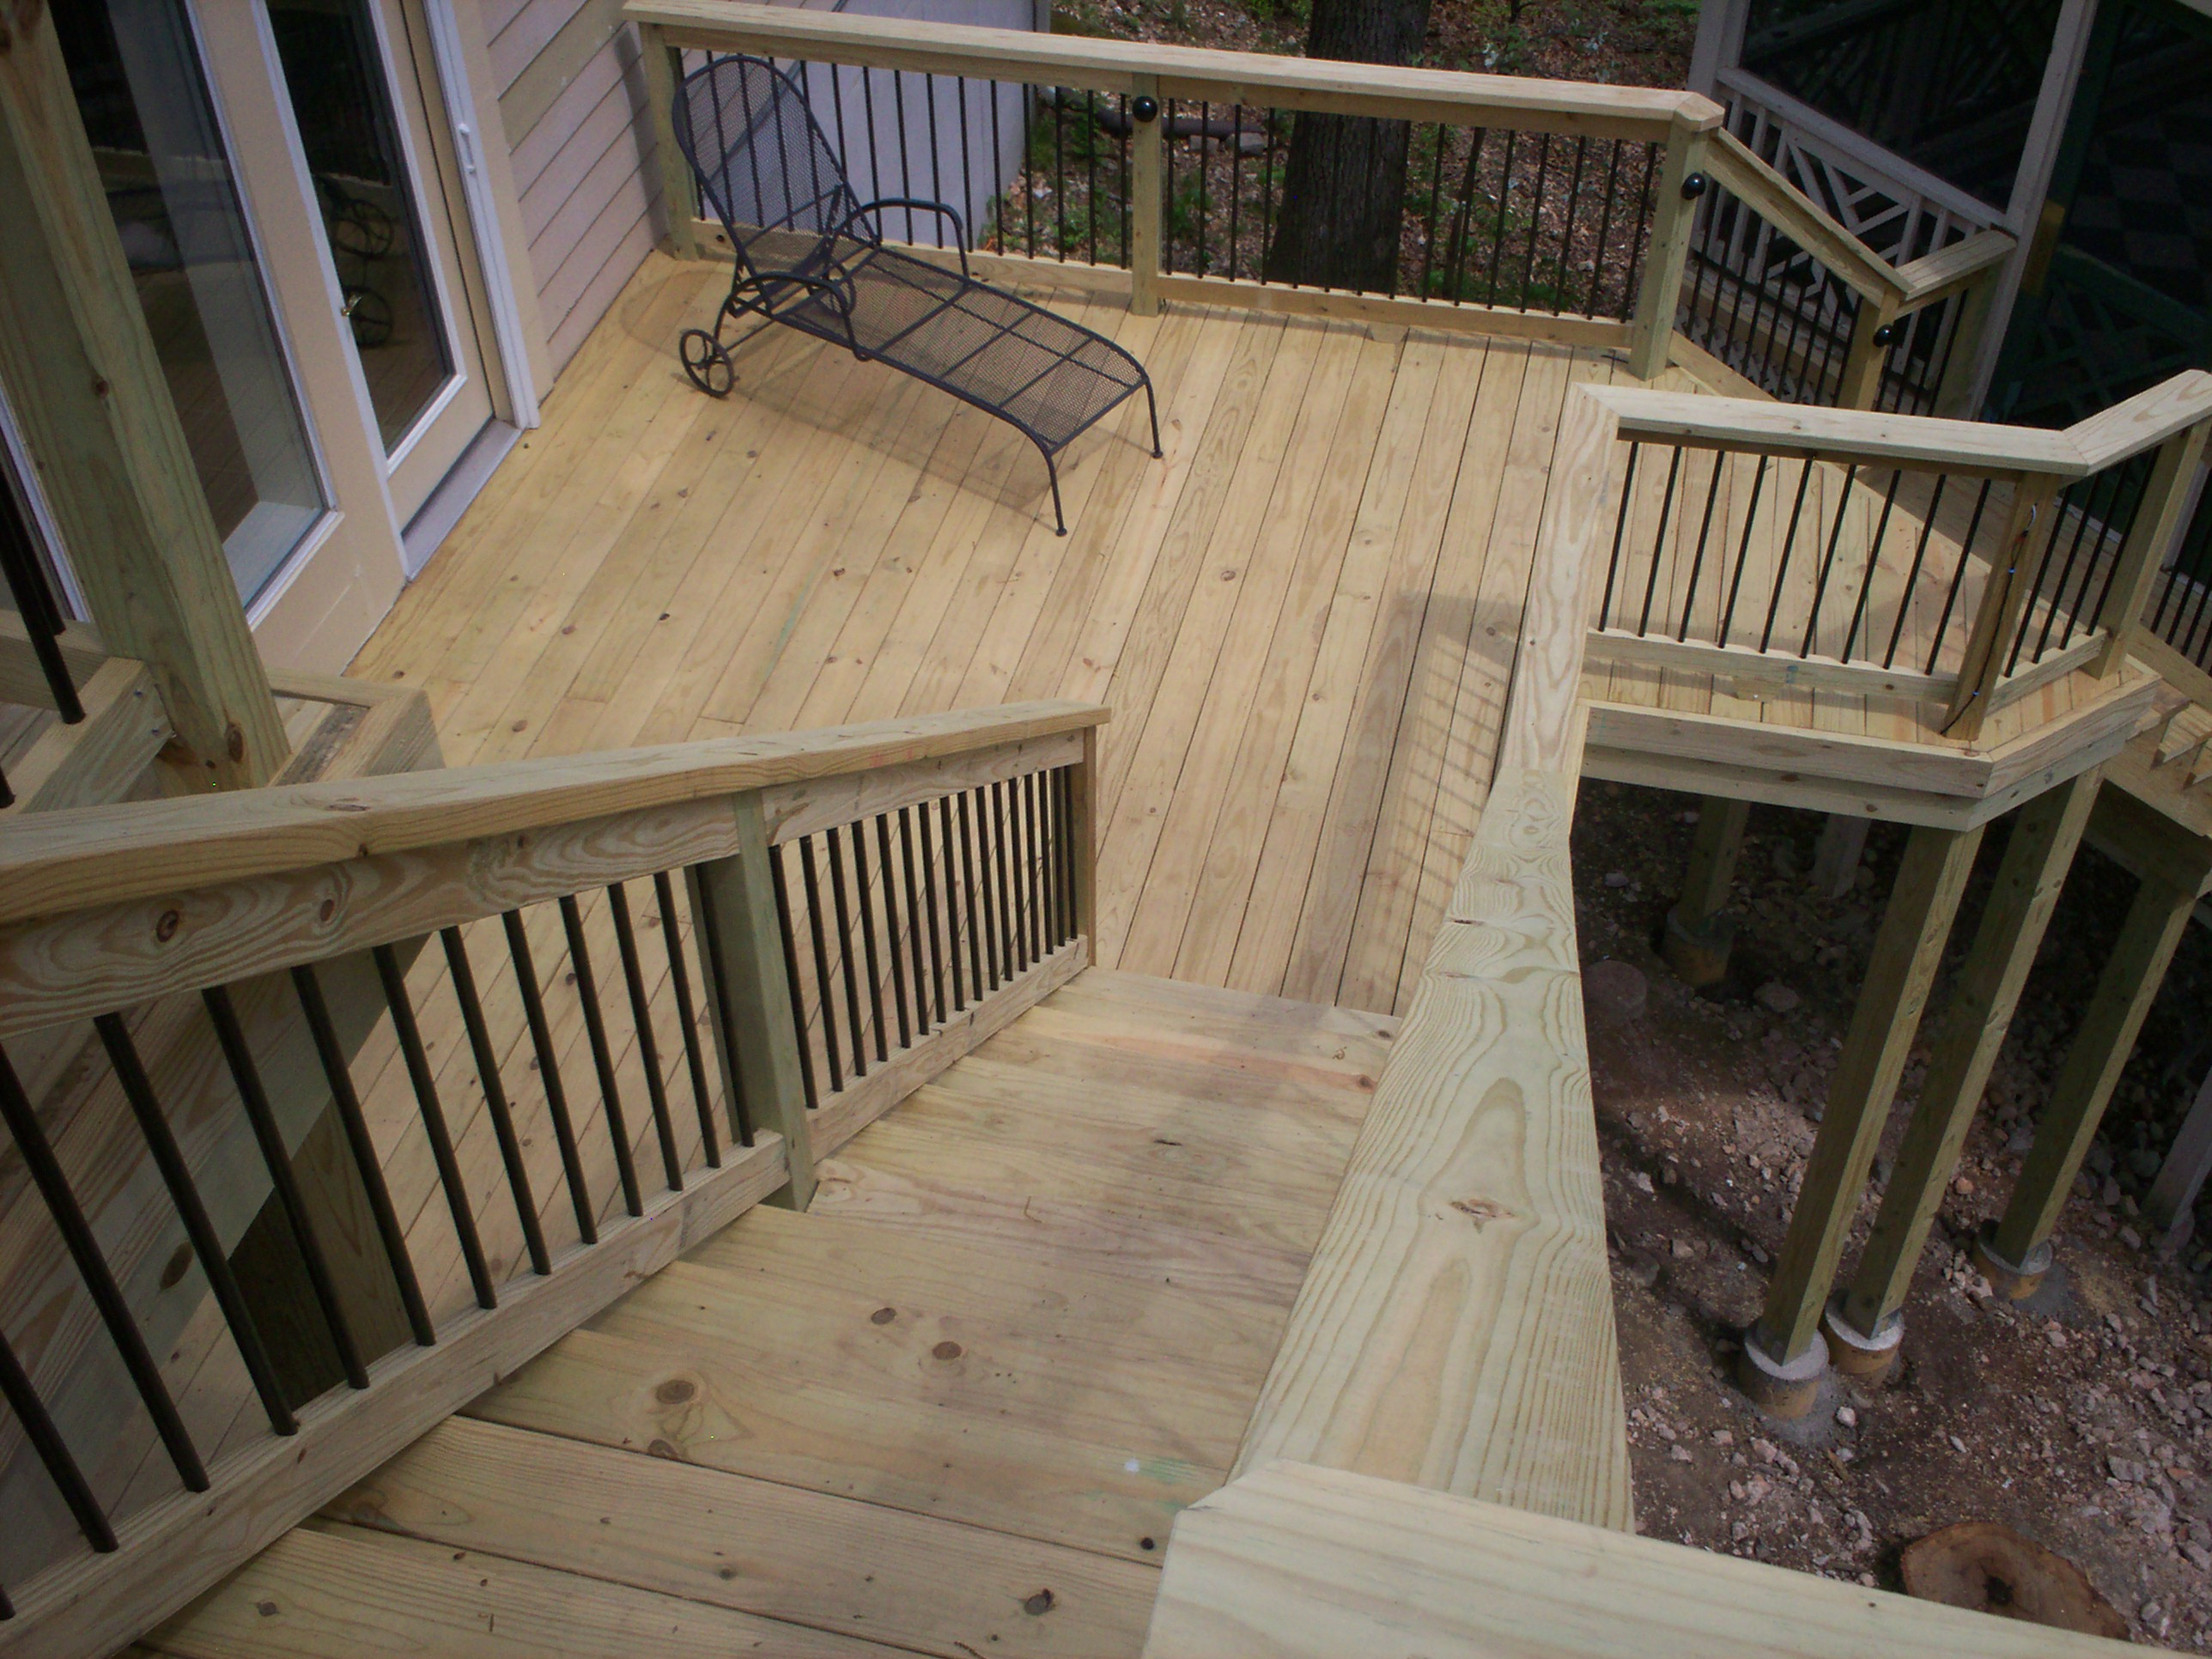 St Louis Deck Design StepItUp With Deck Railing And Stairs - Building deck stairs railing